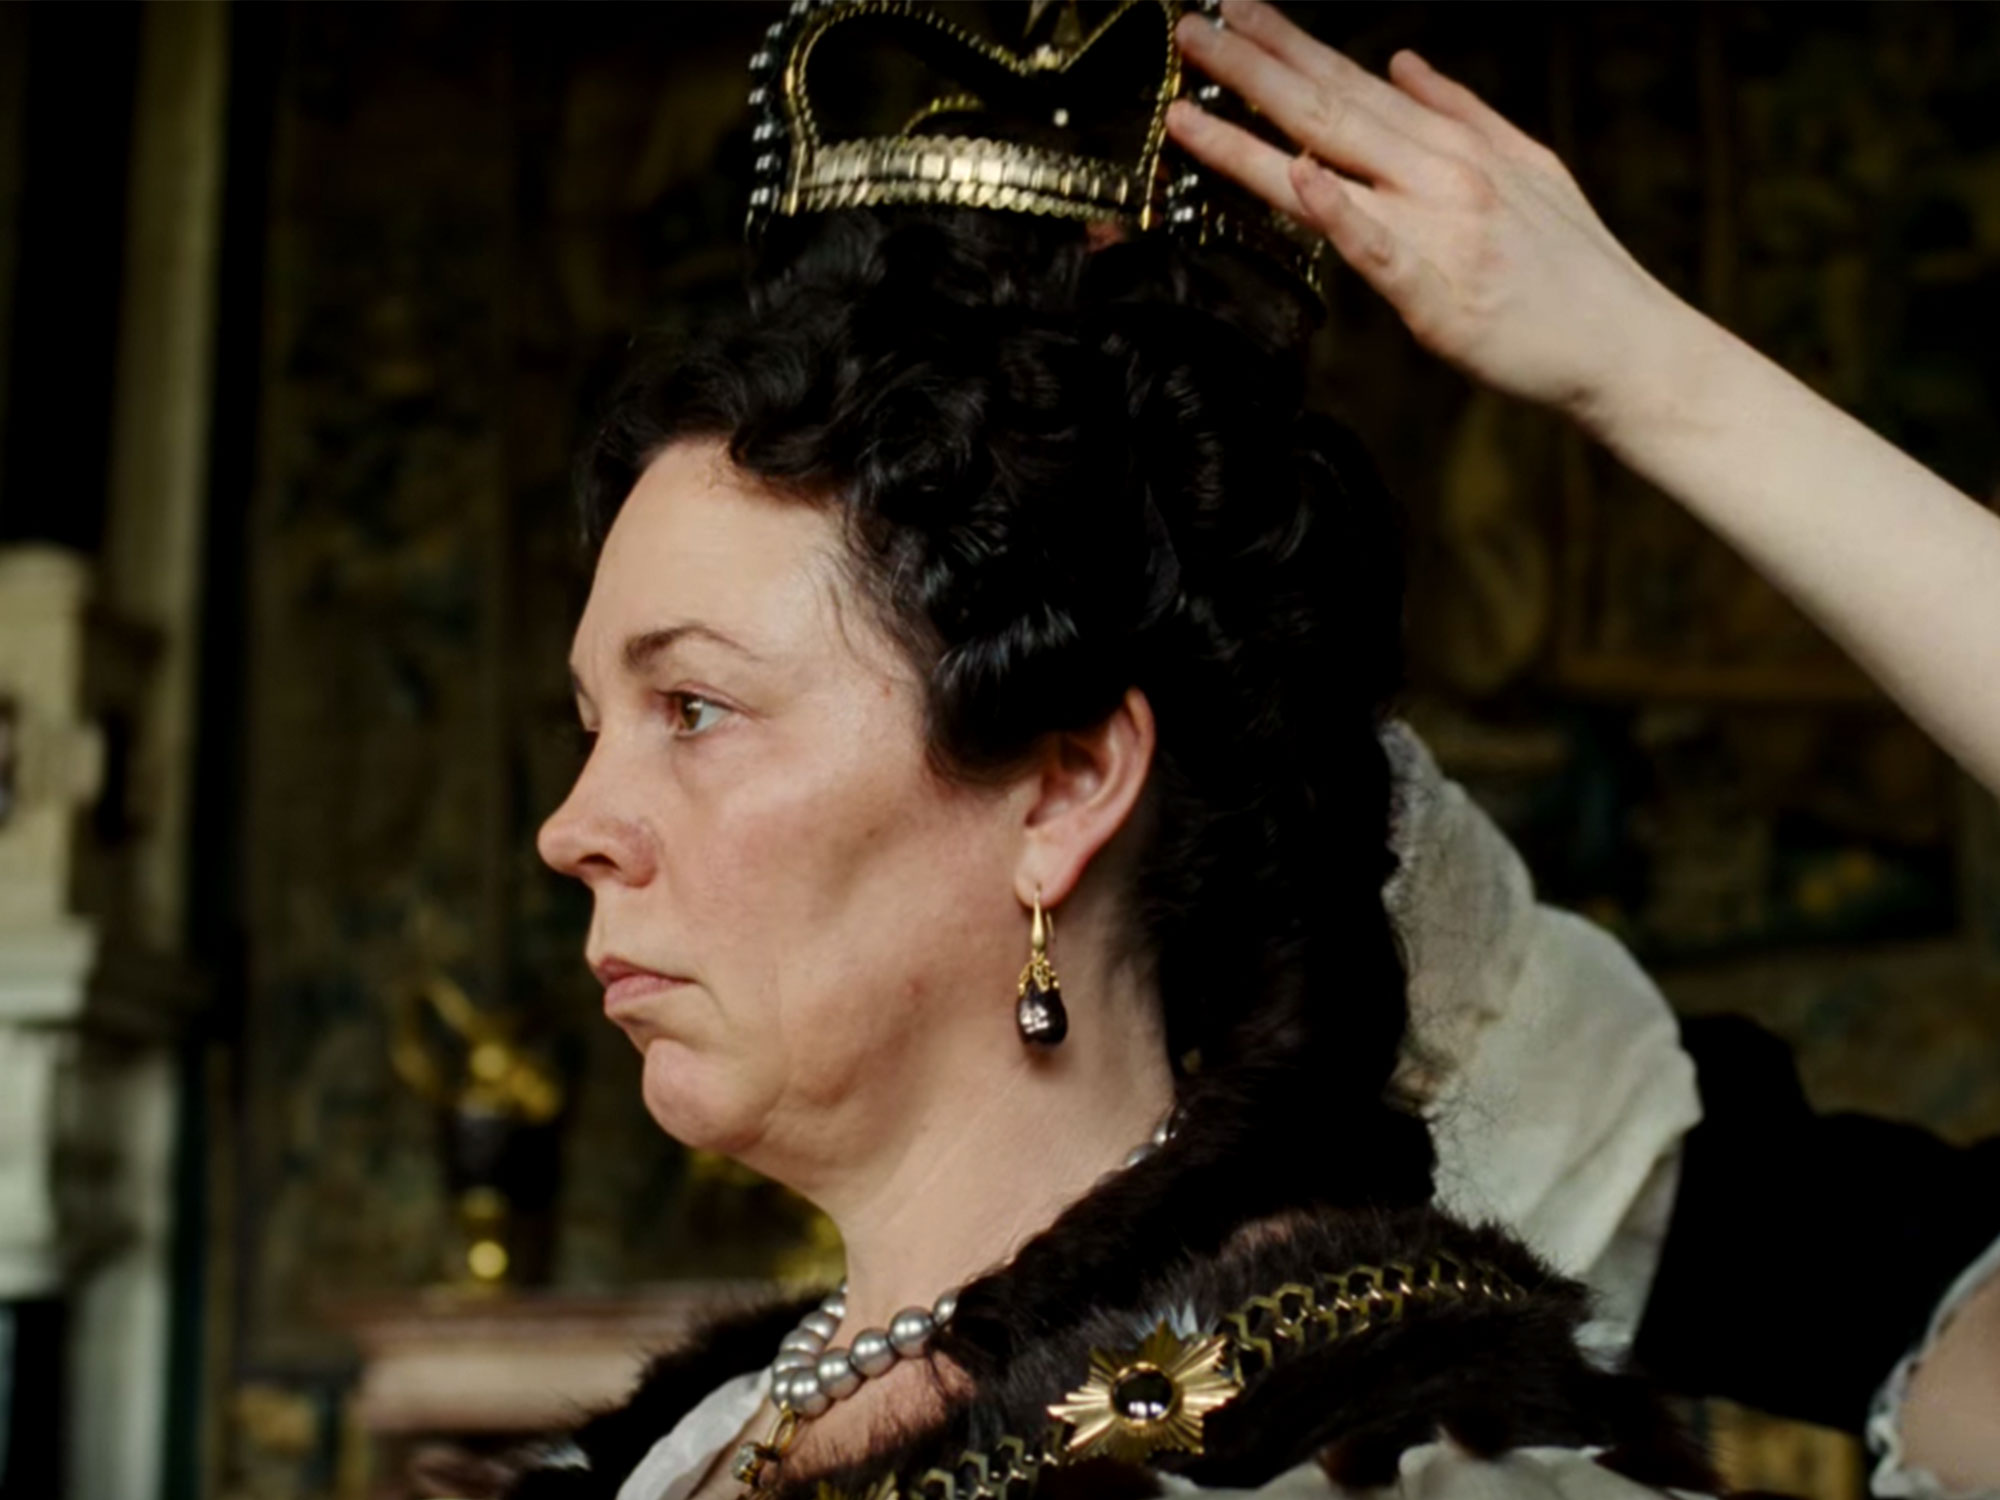 The Favourite: Watch: Rachel Weisz And Olivia Colman In The Favorite Trailer